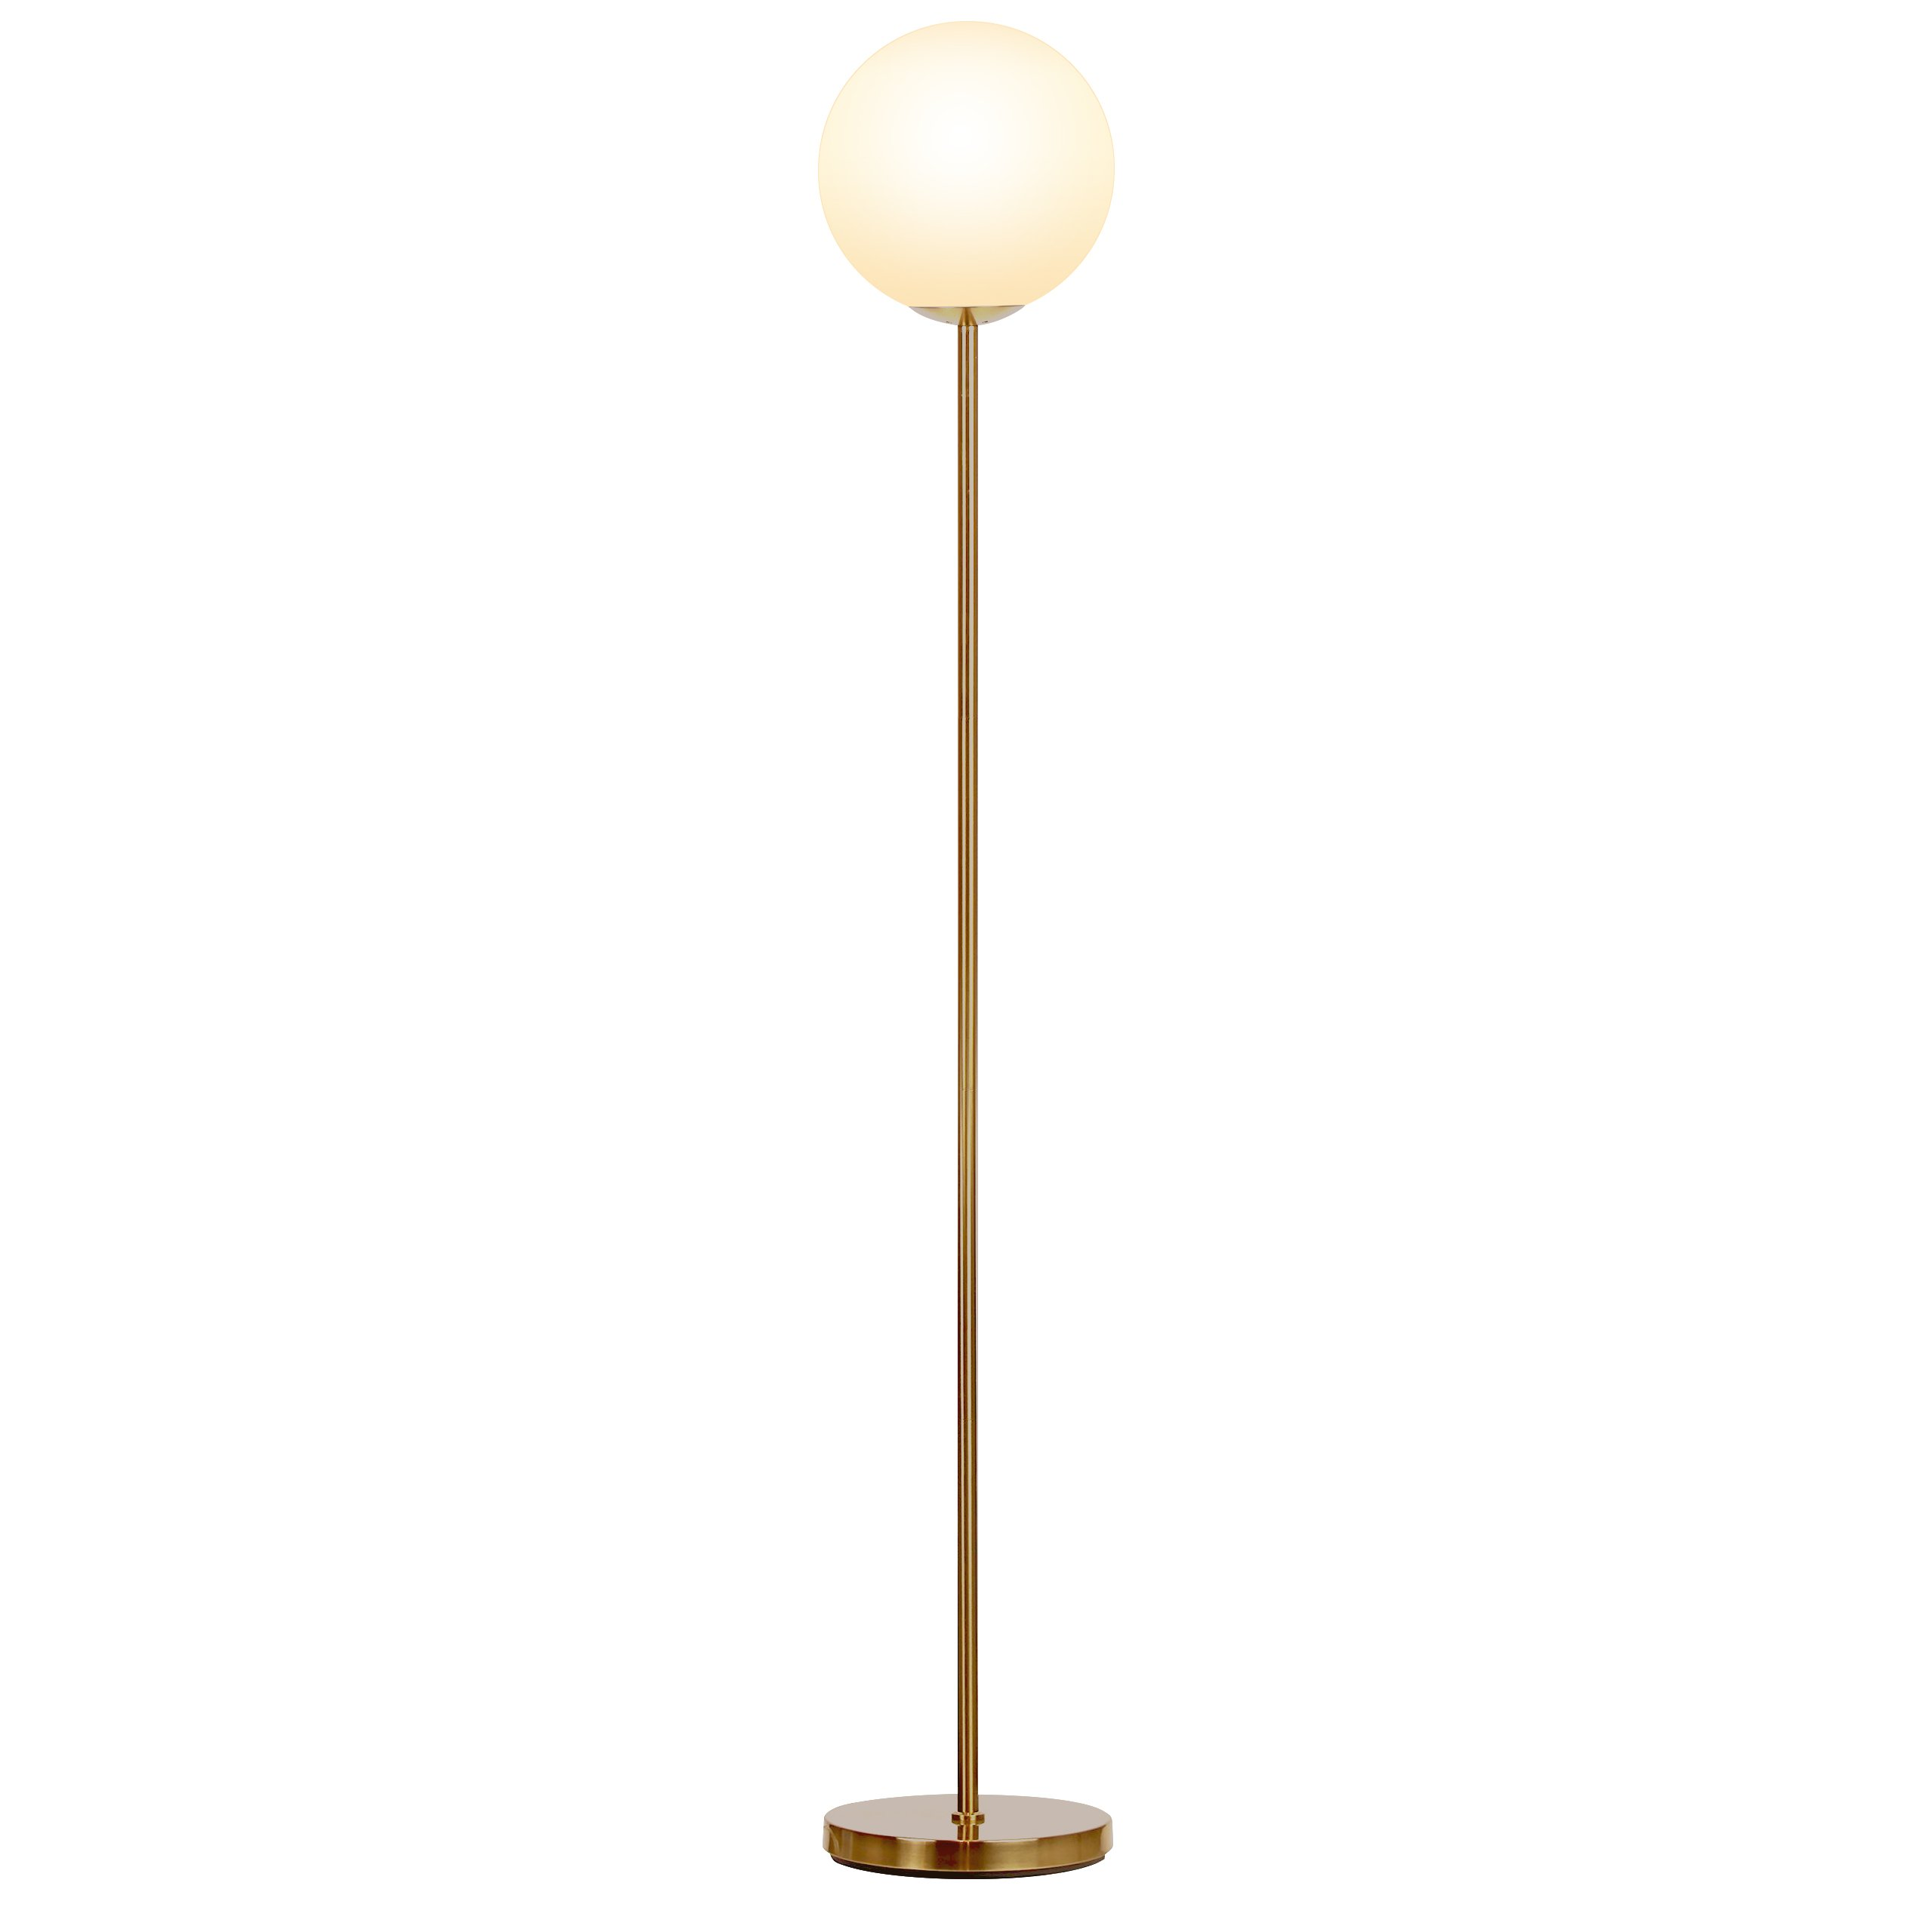 Brightech Luna - Frosted Glass Globe LED Floor Lamp - Mid Century Modern, Alexa Compatible Smart Standing Lamp for Living Rooms - Tall Pole Light for Bedroom & Office - with LED Bulb - Antique Brass